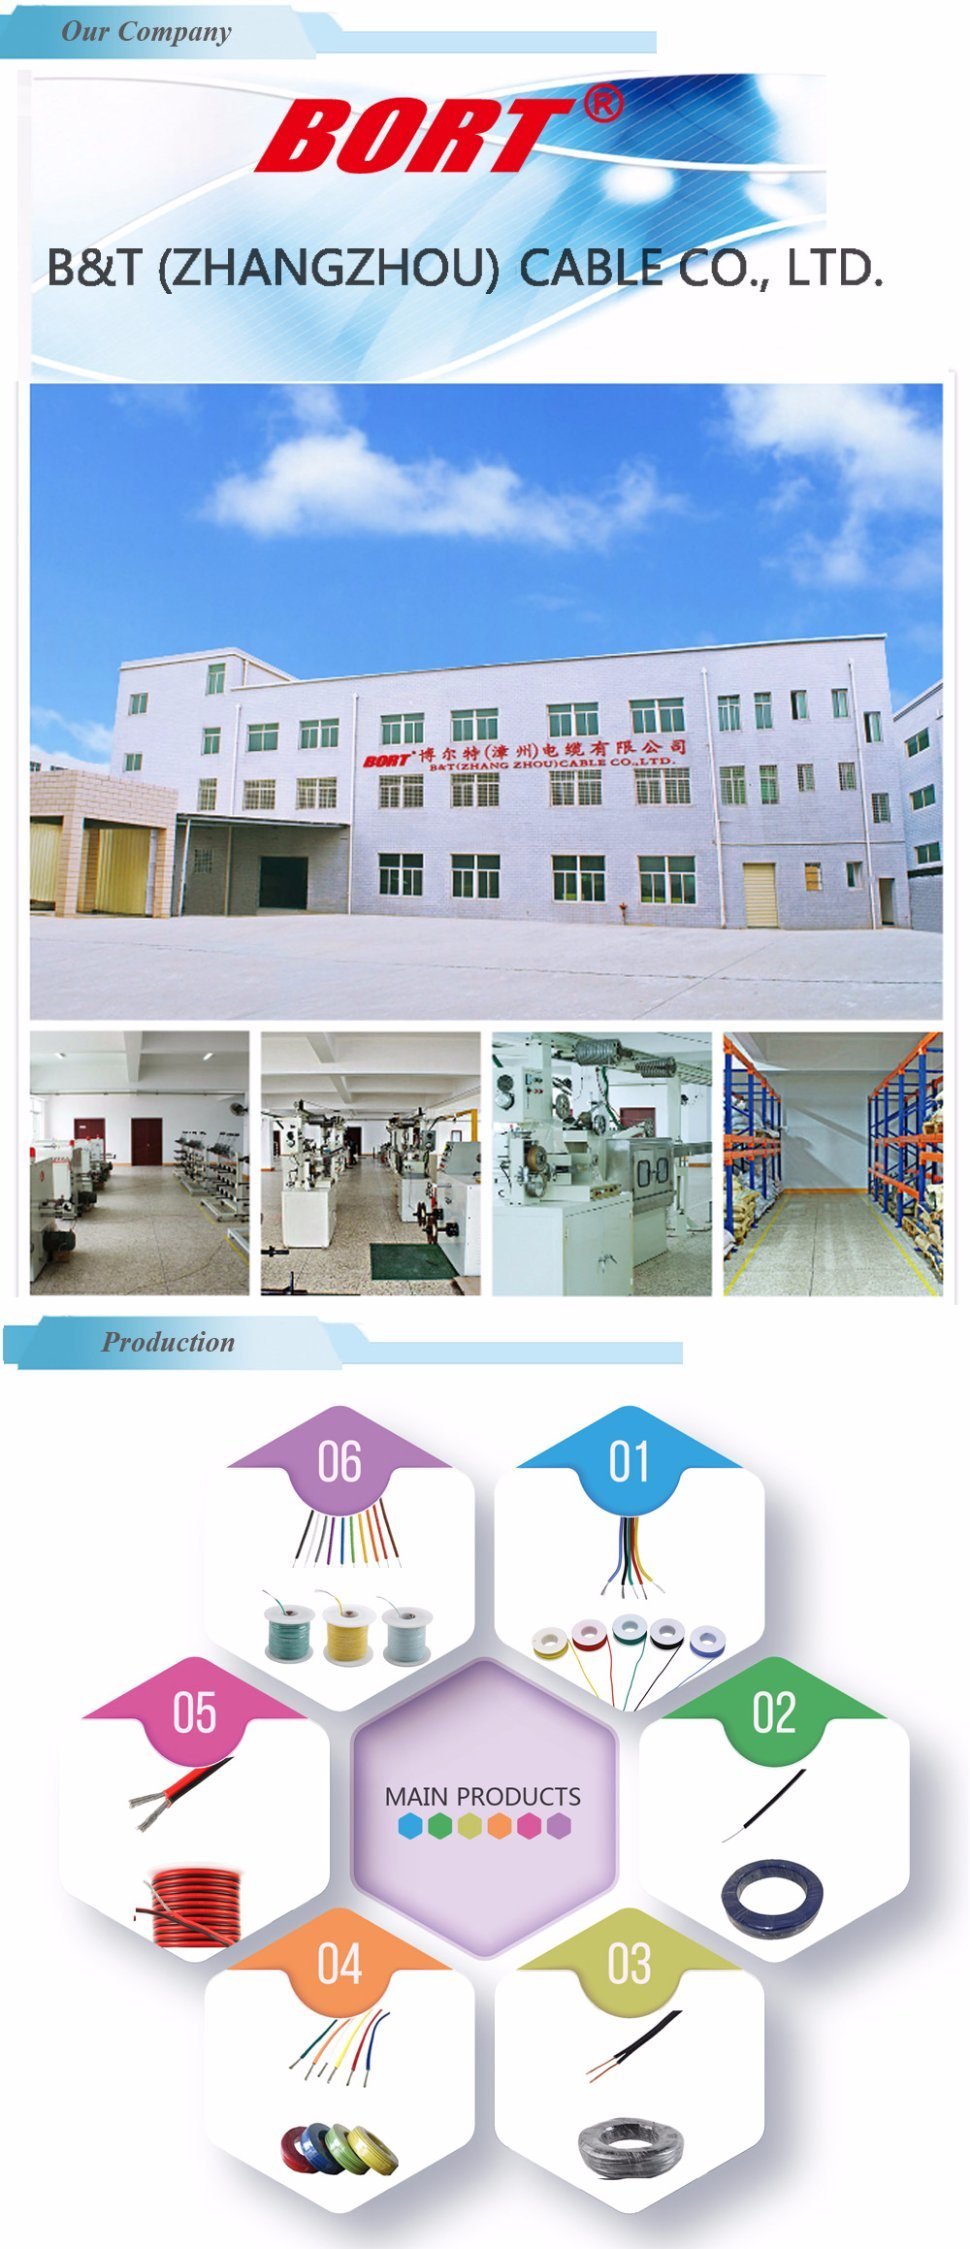 Auto Wire Harness Automotive Cable German Standard Flry A Reach Standards Our Factory Could Meet Iso90012008 Management Systems There Are 6 Production Lines In High Quality Precise Automation Which Supporting Daily